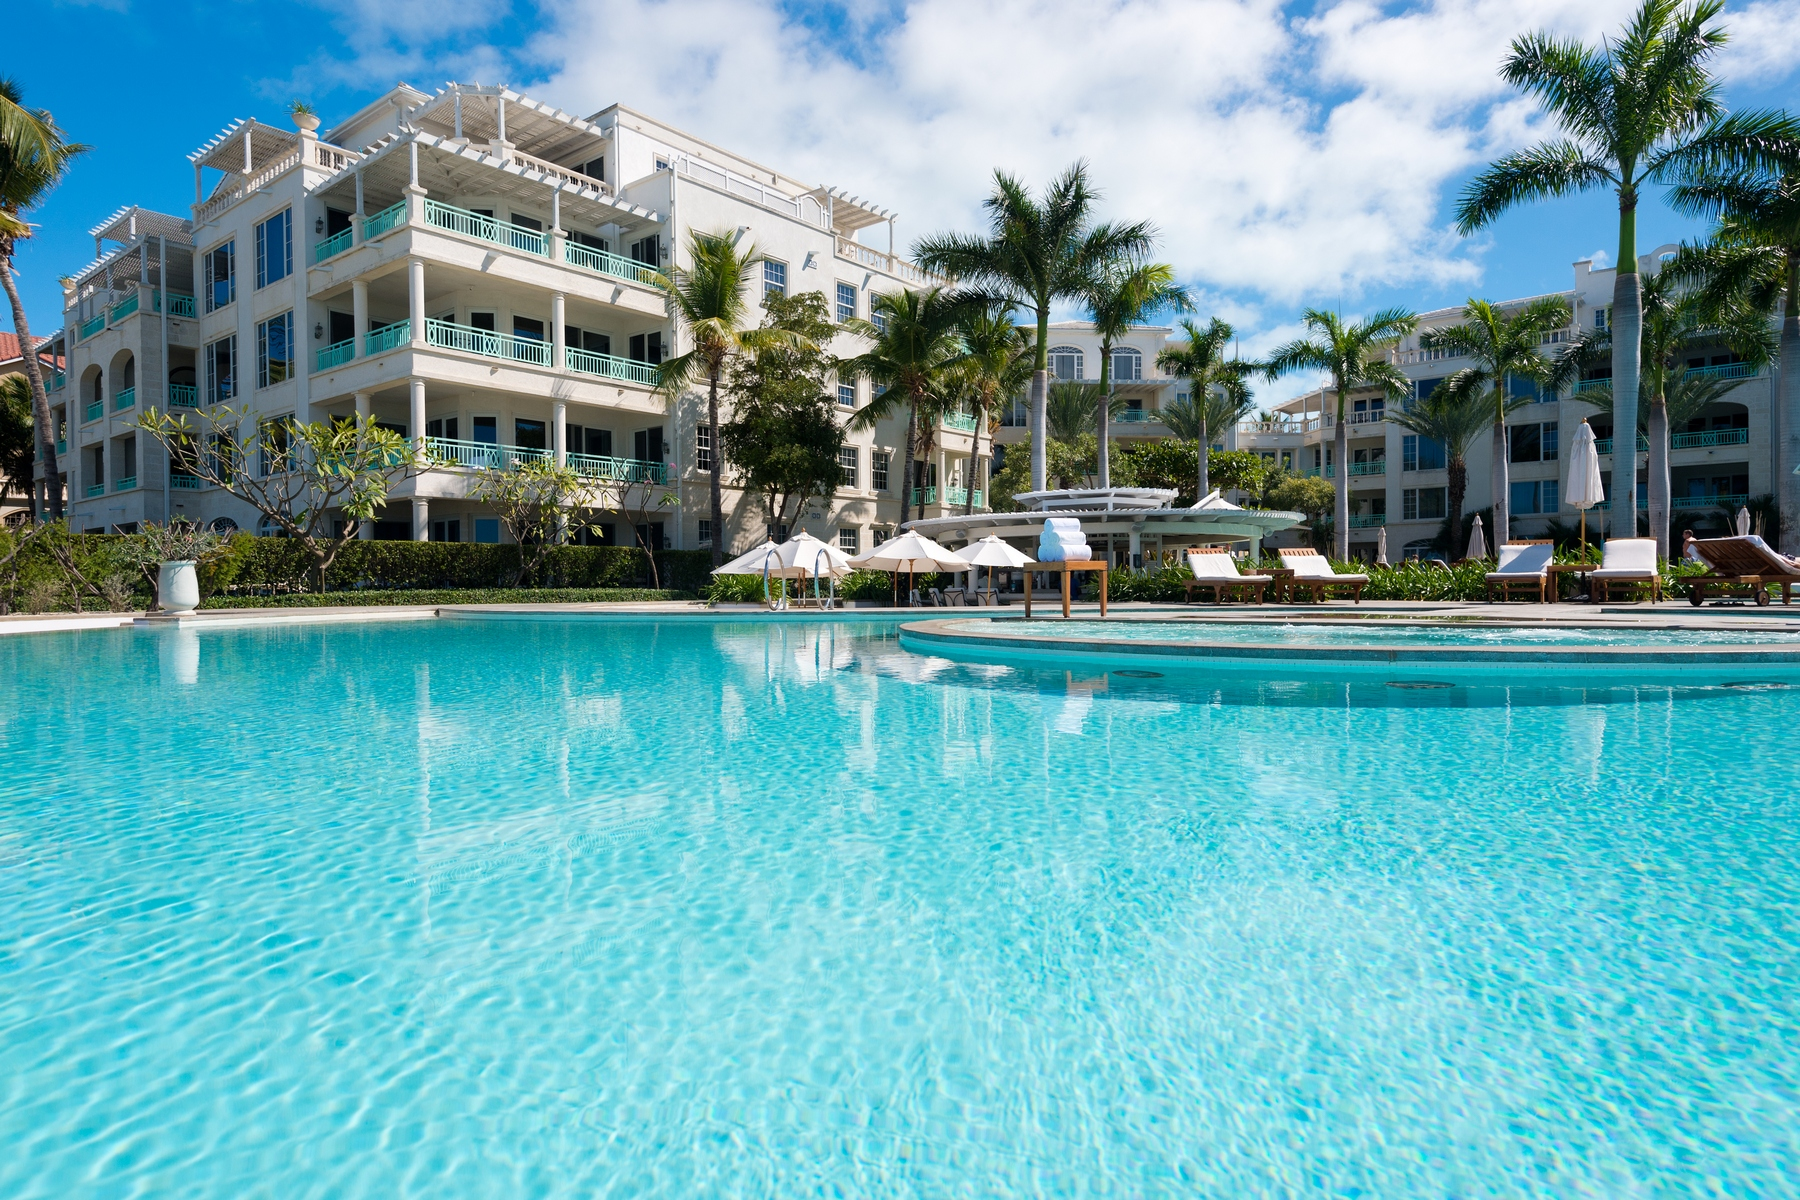 Additional photo for property listing at The Palms - Suite 4301.02 Oceanview Grace Bay, Providenciales TC Islas Turcas Y Caicos